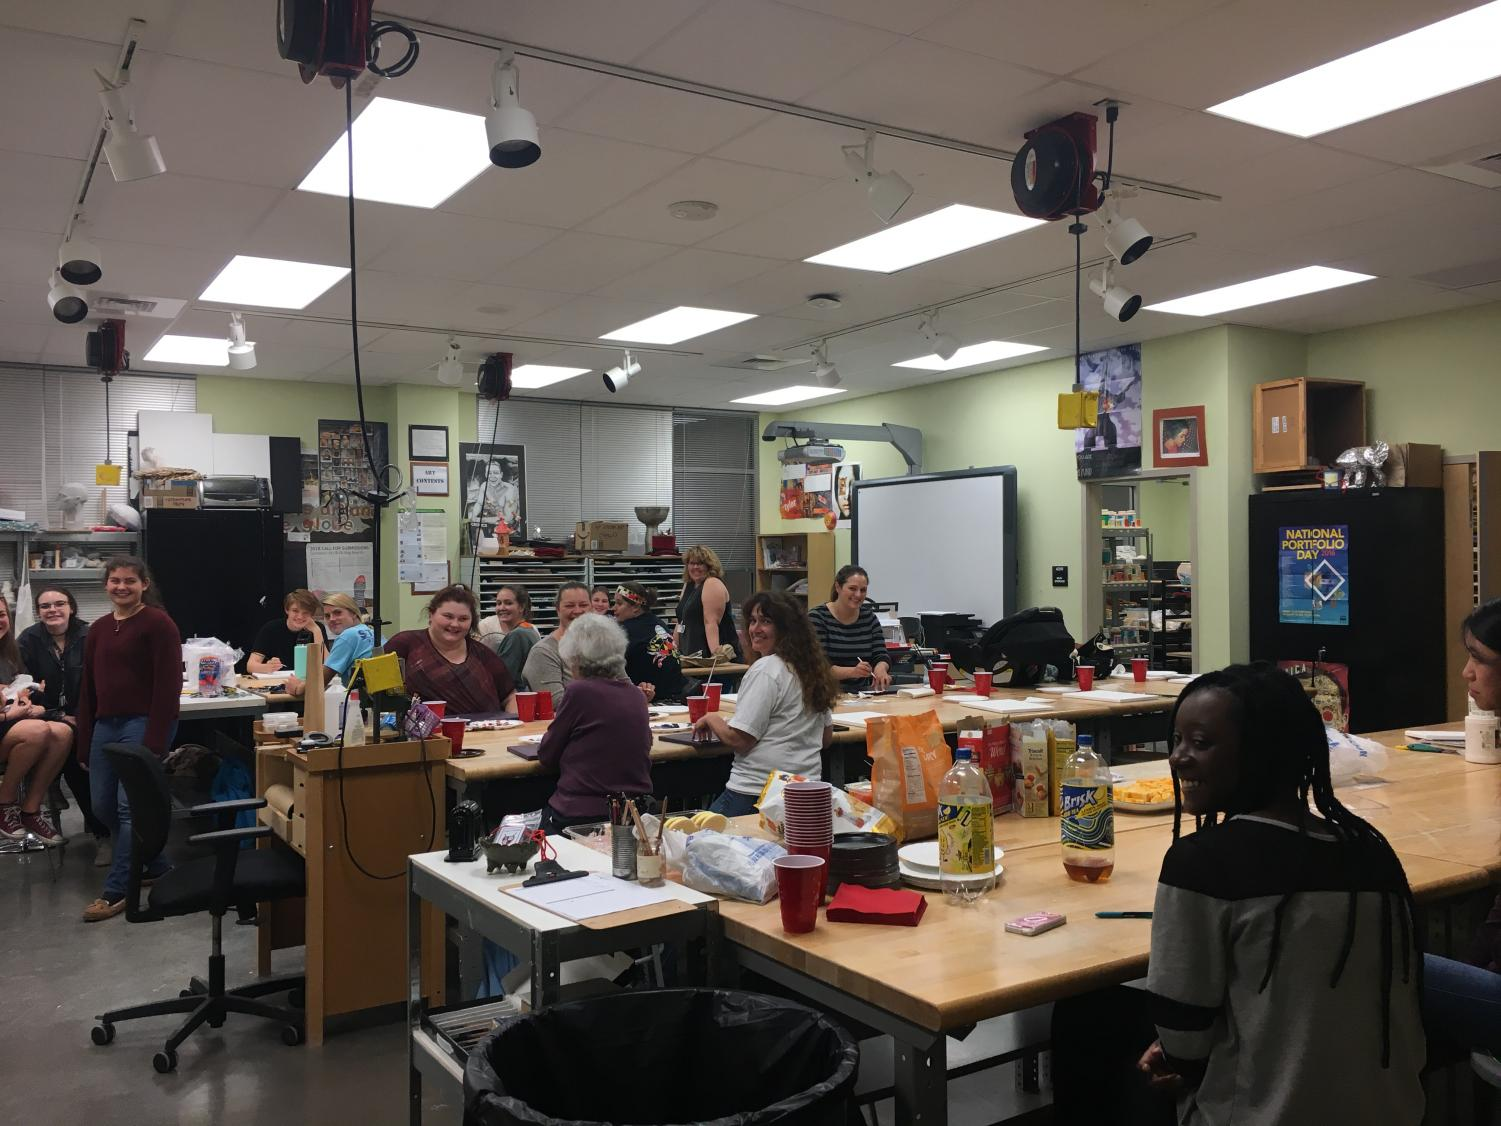 Paint Night attendees hard at work creating their masterpieces.